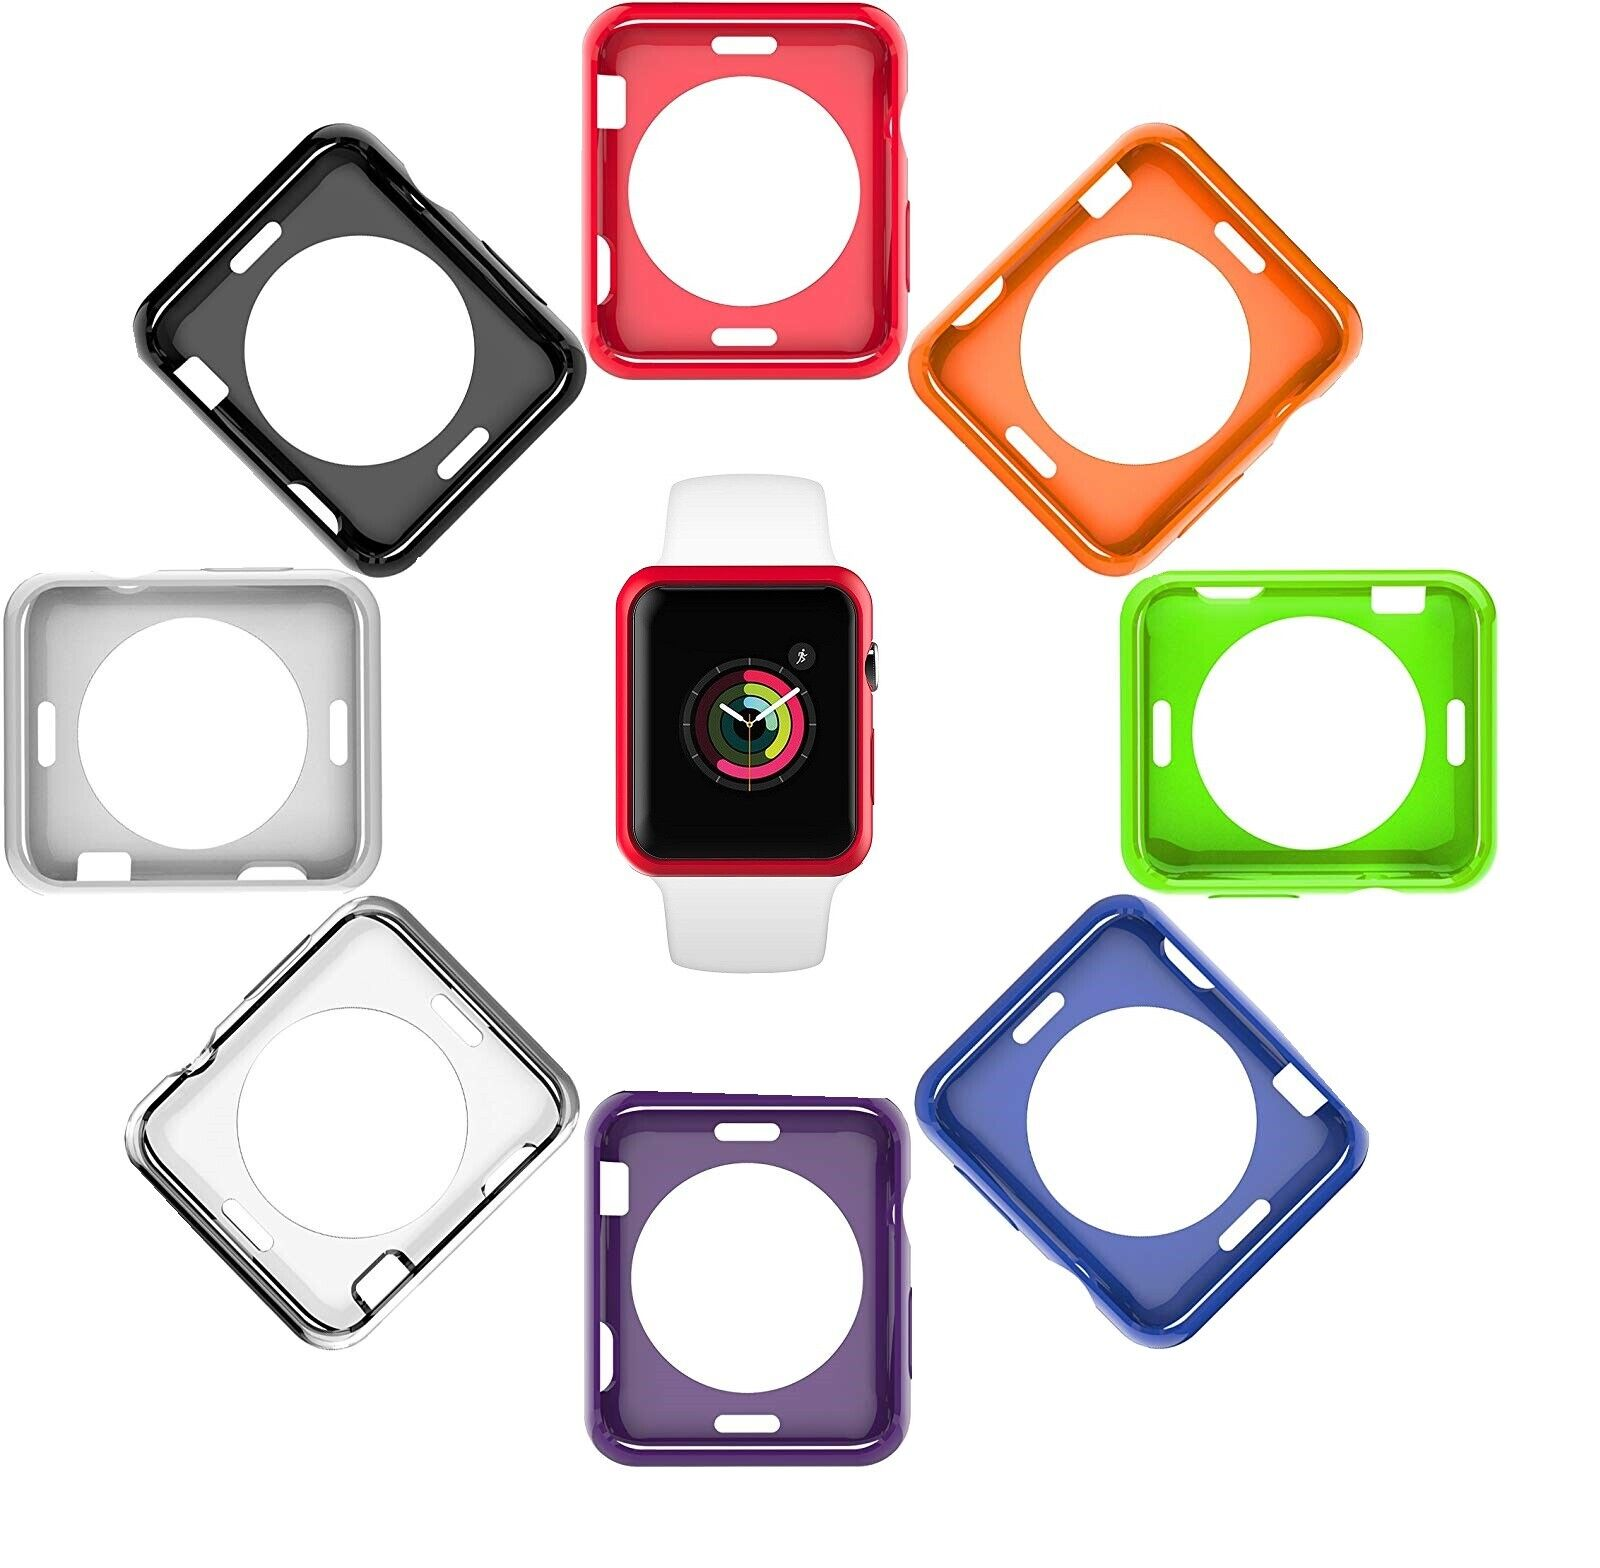 Cover Protective Case 8 Color Pack for 38mm Apple Watch Series 3, 2, 1 Cell Phones & Accessories